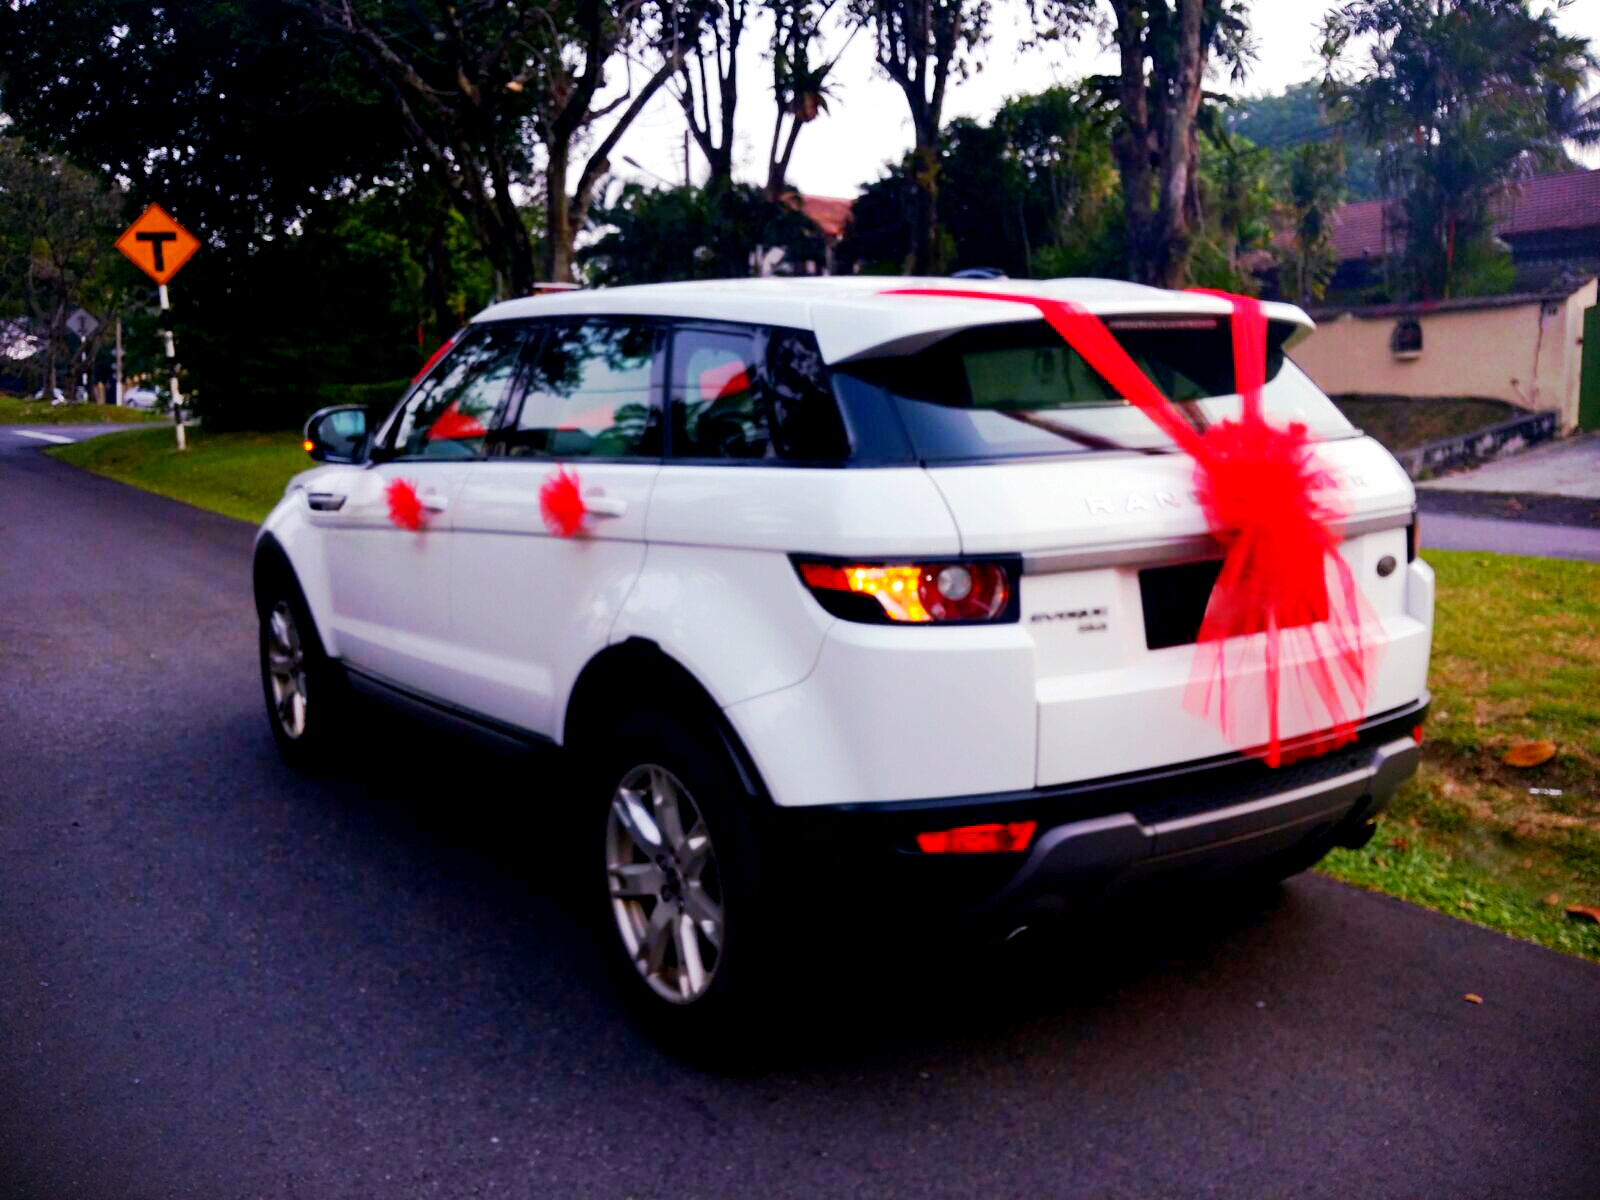 Range Rover Sport >> RedOrca Malaysia Wedding and Event Car Rental: Range Rover Evoque with red teddy bear bridal car ...